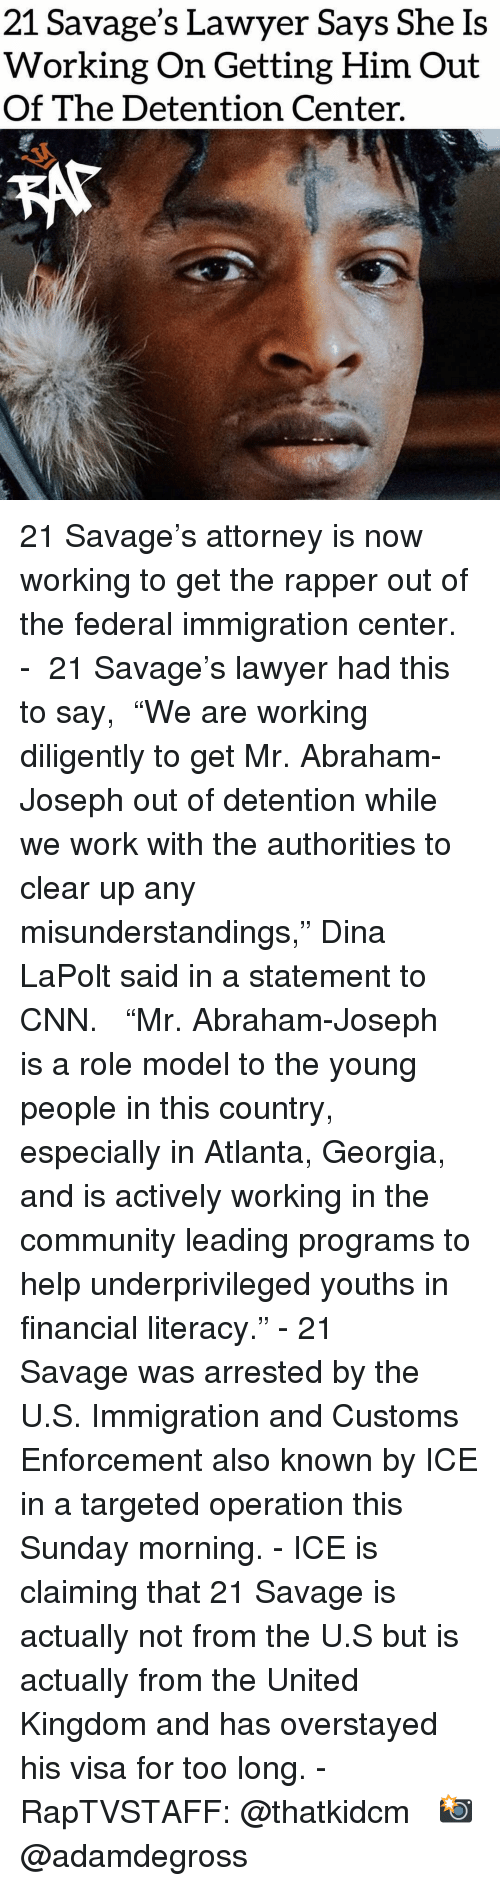 "Abraham: 21 Savage's Lawyer Says She Is  Working On Getting Him Out  Of The Detention Center. 21 Savage's attorney is now working to get the rapper out of the federal immigration center.⁣⁣ - ⁣⁣ 21 Savage's lawyer had this to say,⁣⁣ ⁣⁣ ""We are working diligently to get Mr. Abraham-Joseph out of detention while we work with the authorities to clear up any misunderstandings,"" Dina LaPolt said in a statement to CNN. ⁣⁣ ⁣⁣ ""Mr. Abraham-Joseph is a role model to the young people in this country, especially in Atlanta, Georgia, and is actively working in the community leading programs to help underprivileged youths in financial literacy.""⁣⁣ -⁣⁣ 21 Savage was arrested by the U.S. Immigration and Customs Enforcement also known by ICE in a targeted operation this Sunday morning.⁣⁣ -⁣⁣ ICE is claiming that 21 Savage is actually not from the U.S but is actually from the United Kingdom and has overstayed his visa for too long.⁣⁣ -⁣⁣ RapTVSTAFF: @thatkidcm⁣⁣ 📸 @adamdegross⁣"